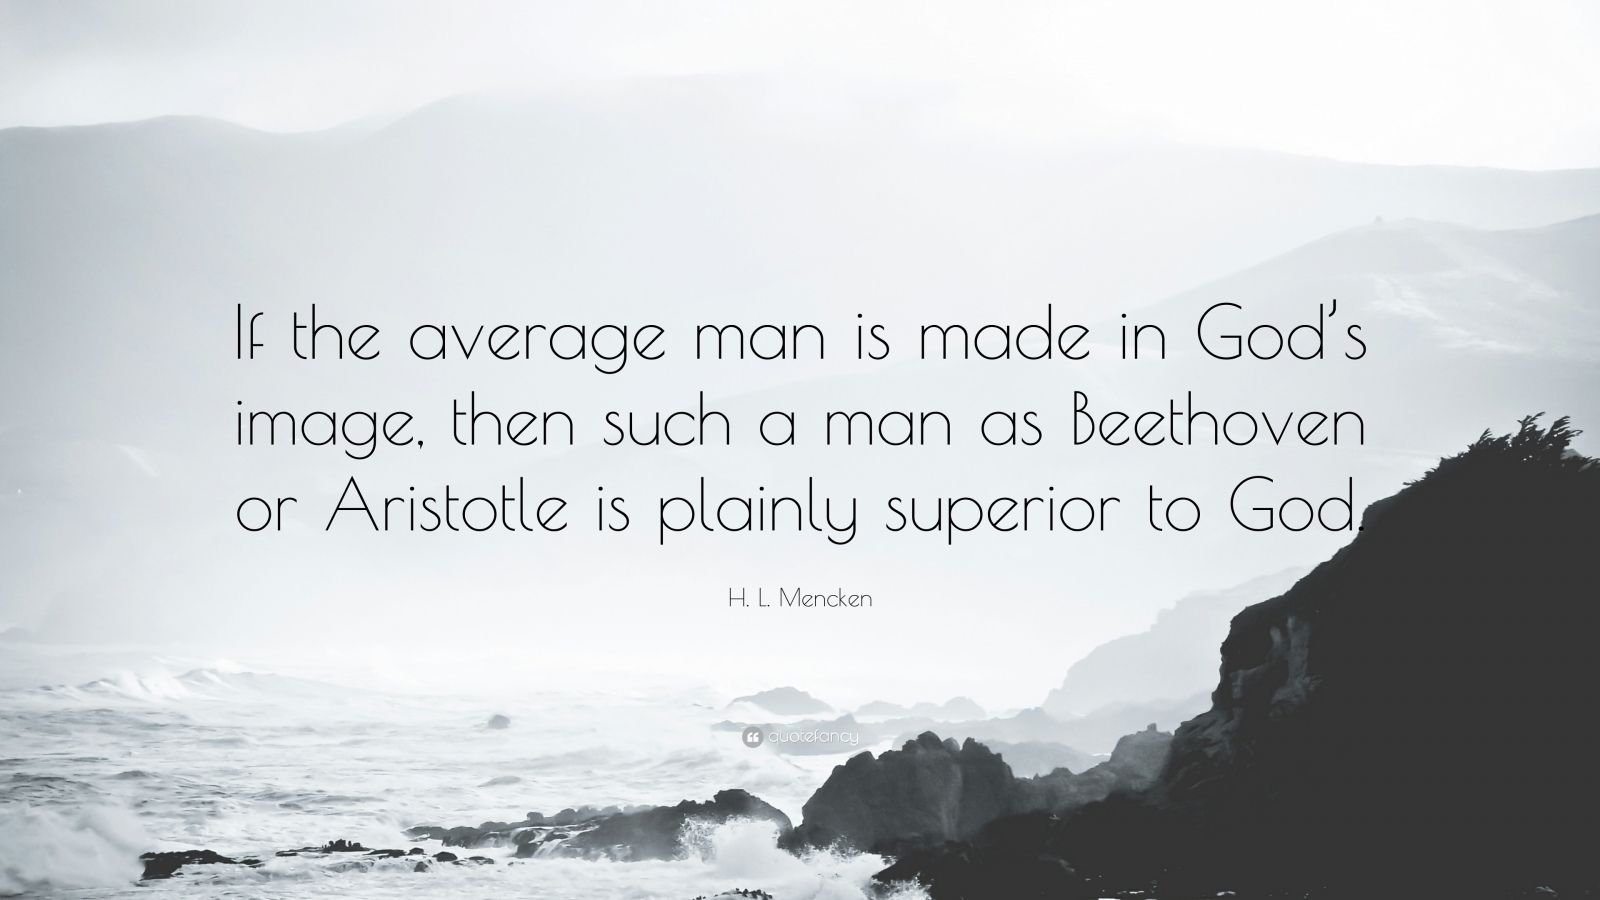 """H. L. Mencken Quote: """"If the average man is made in God's image, then such a man as Beethoven or Aristotle is plainly superior to God."""""""